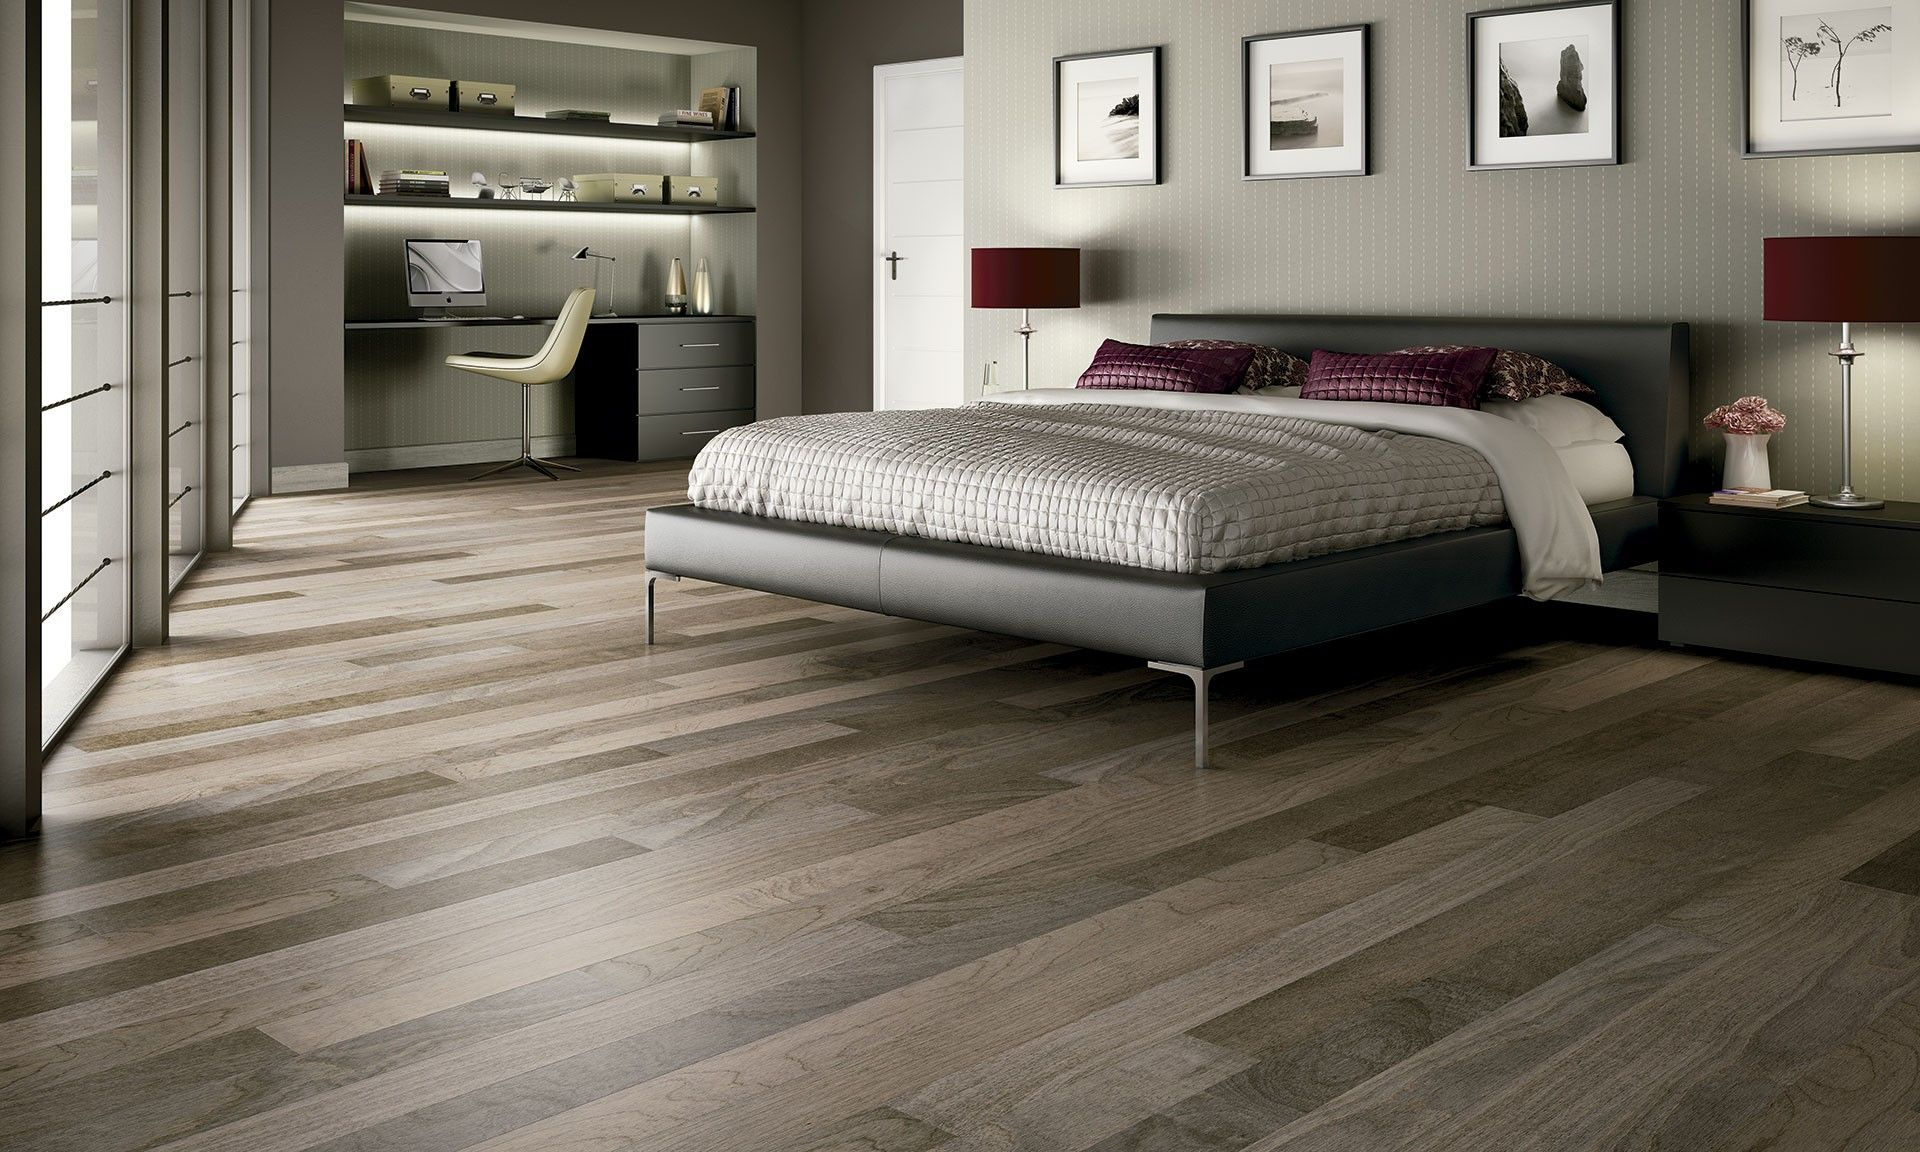 Accessories & Furniture,Admirable Cost Of Wood Laminate